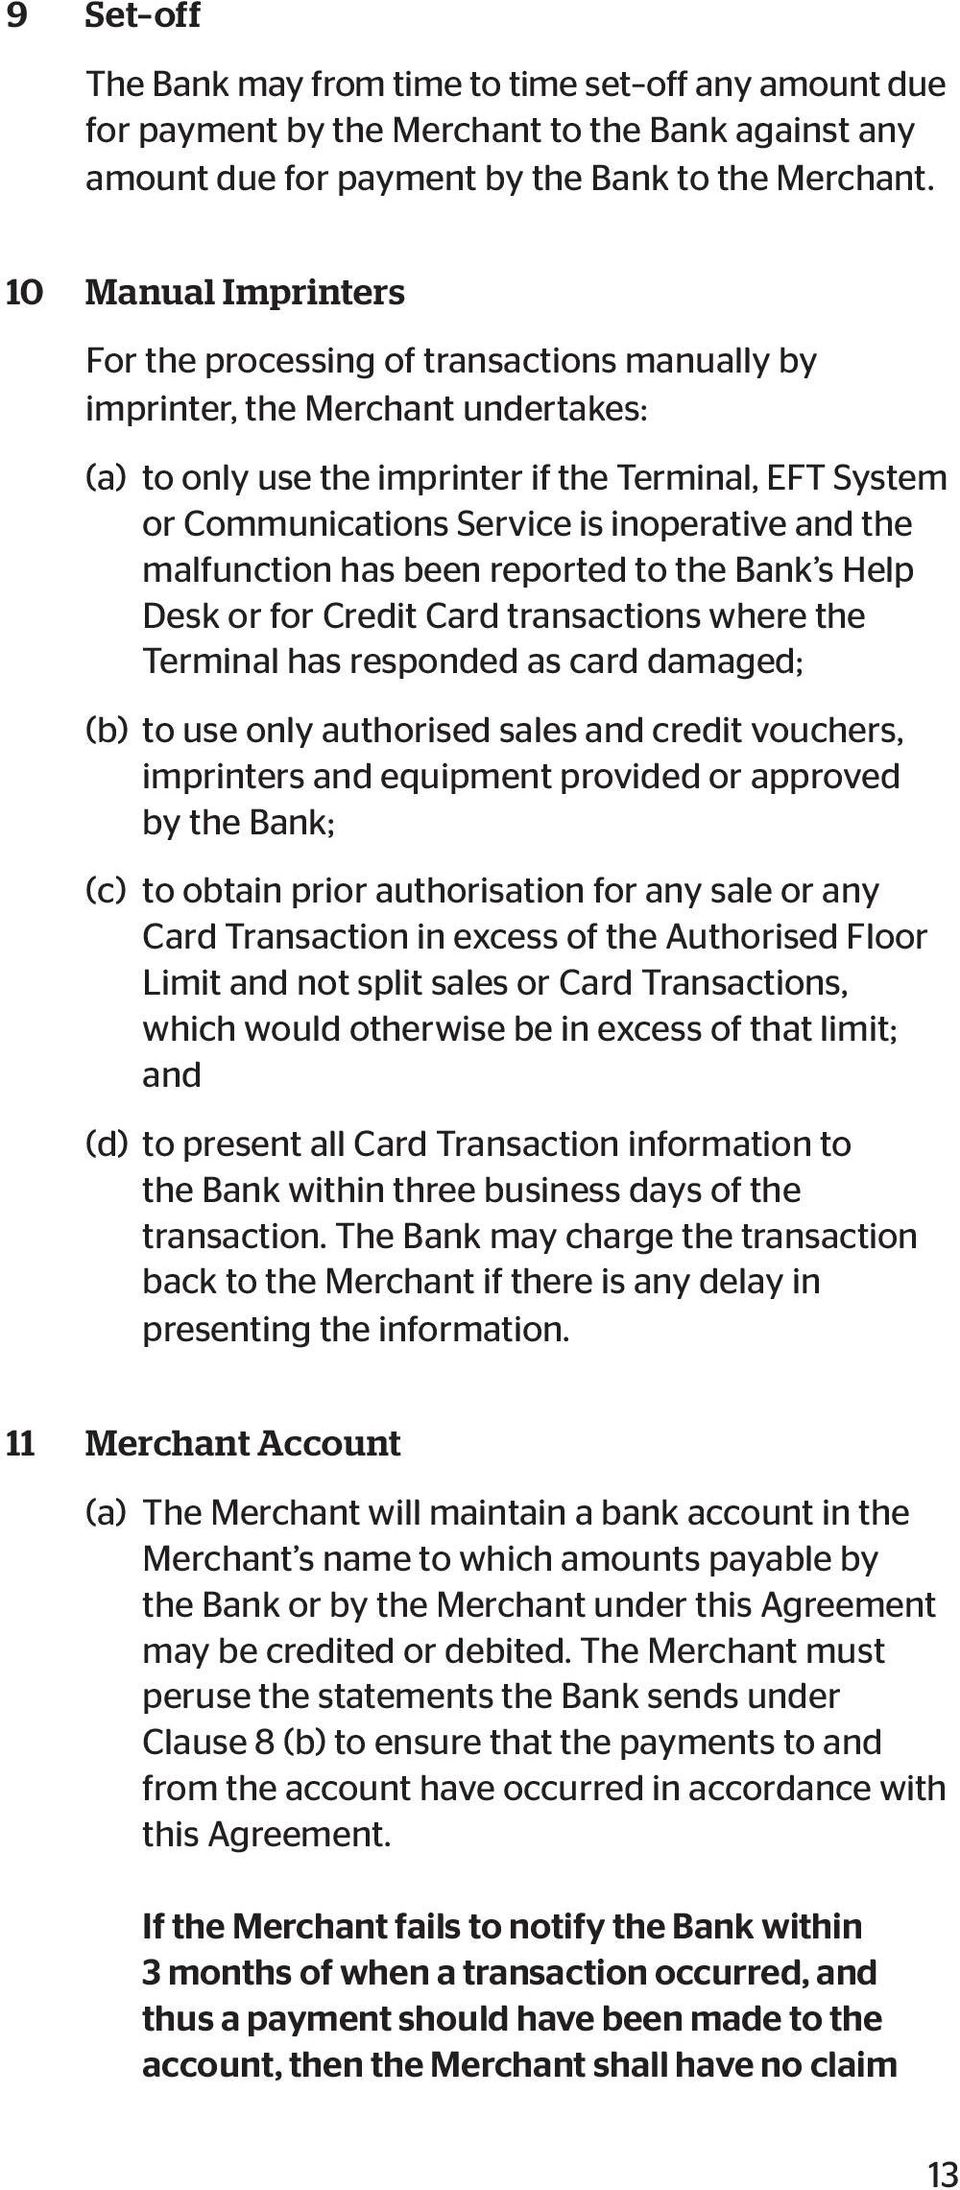 inoperative and the malfunction has been reported to the Bank s Help Desk or for Credit Card transactions where the Terminal has responded as card damaged; (b) to use only authorised sales and credit